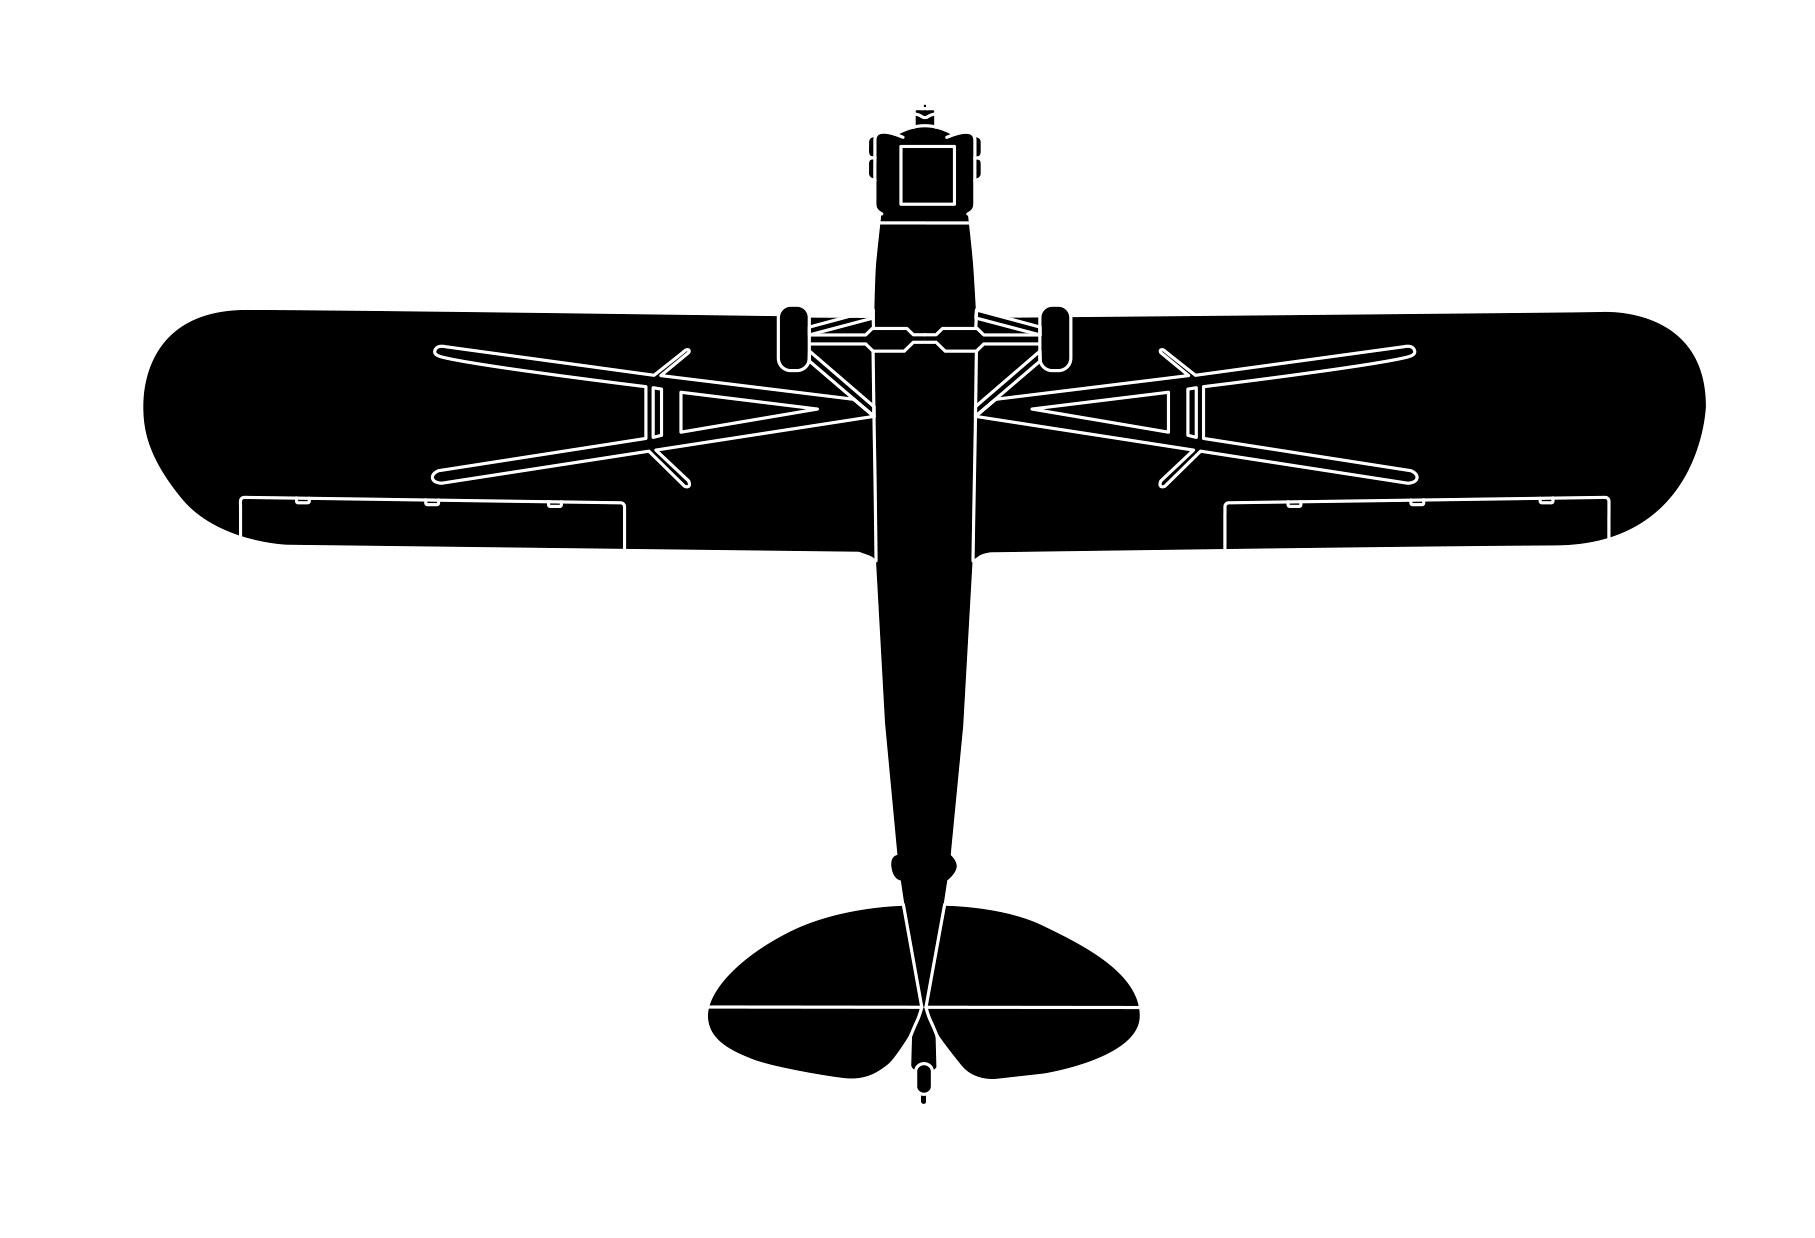 1b PiperL4Grasshopper_4View_LIVE.jpg